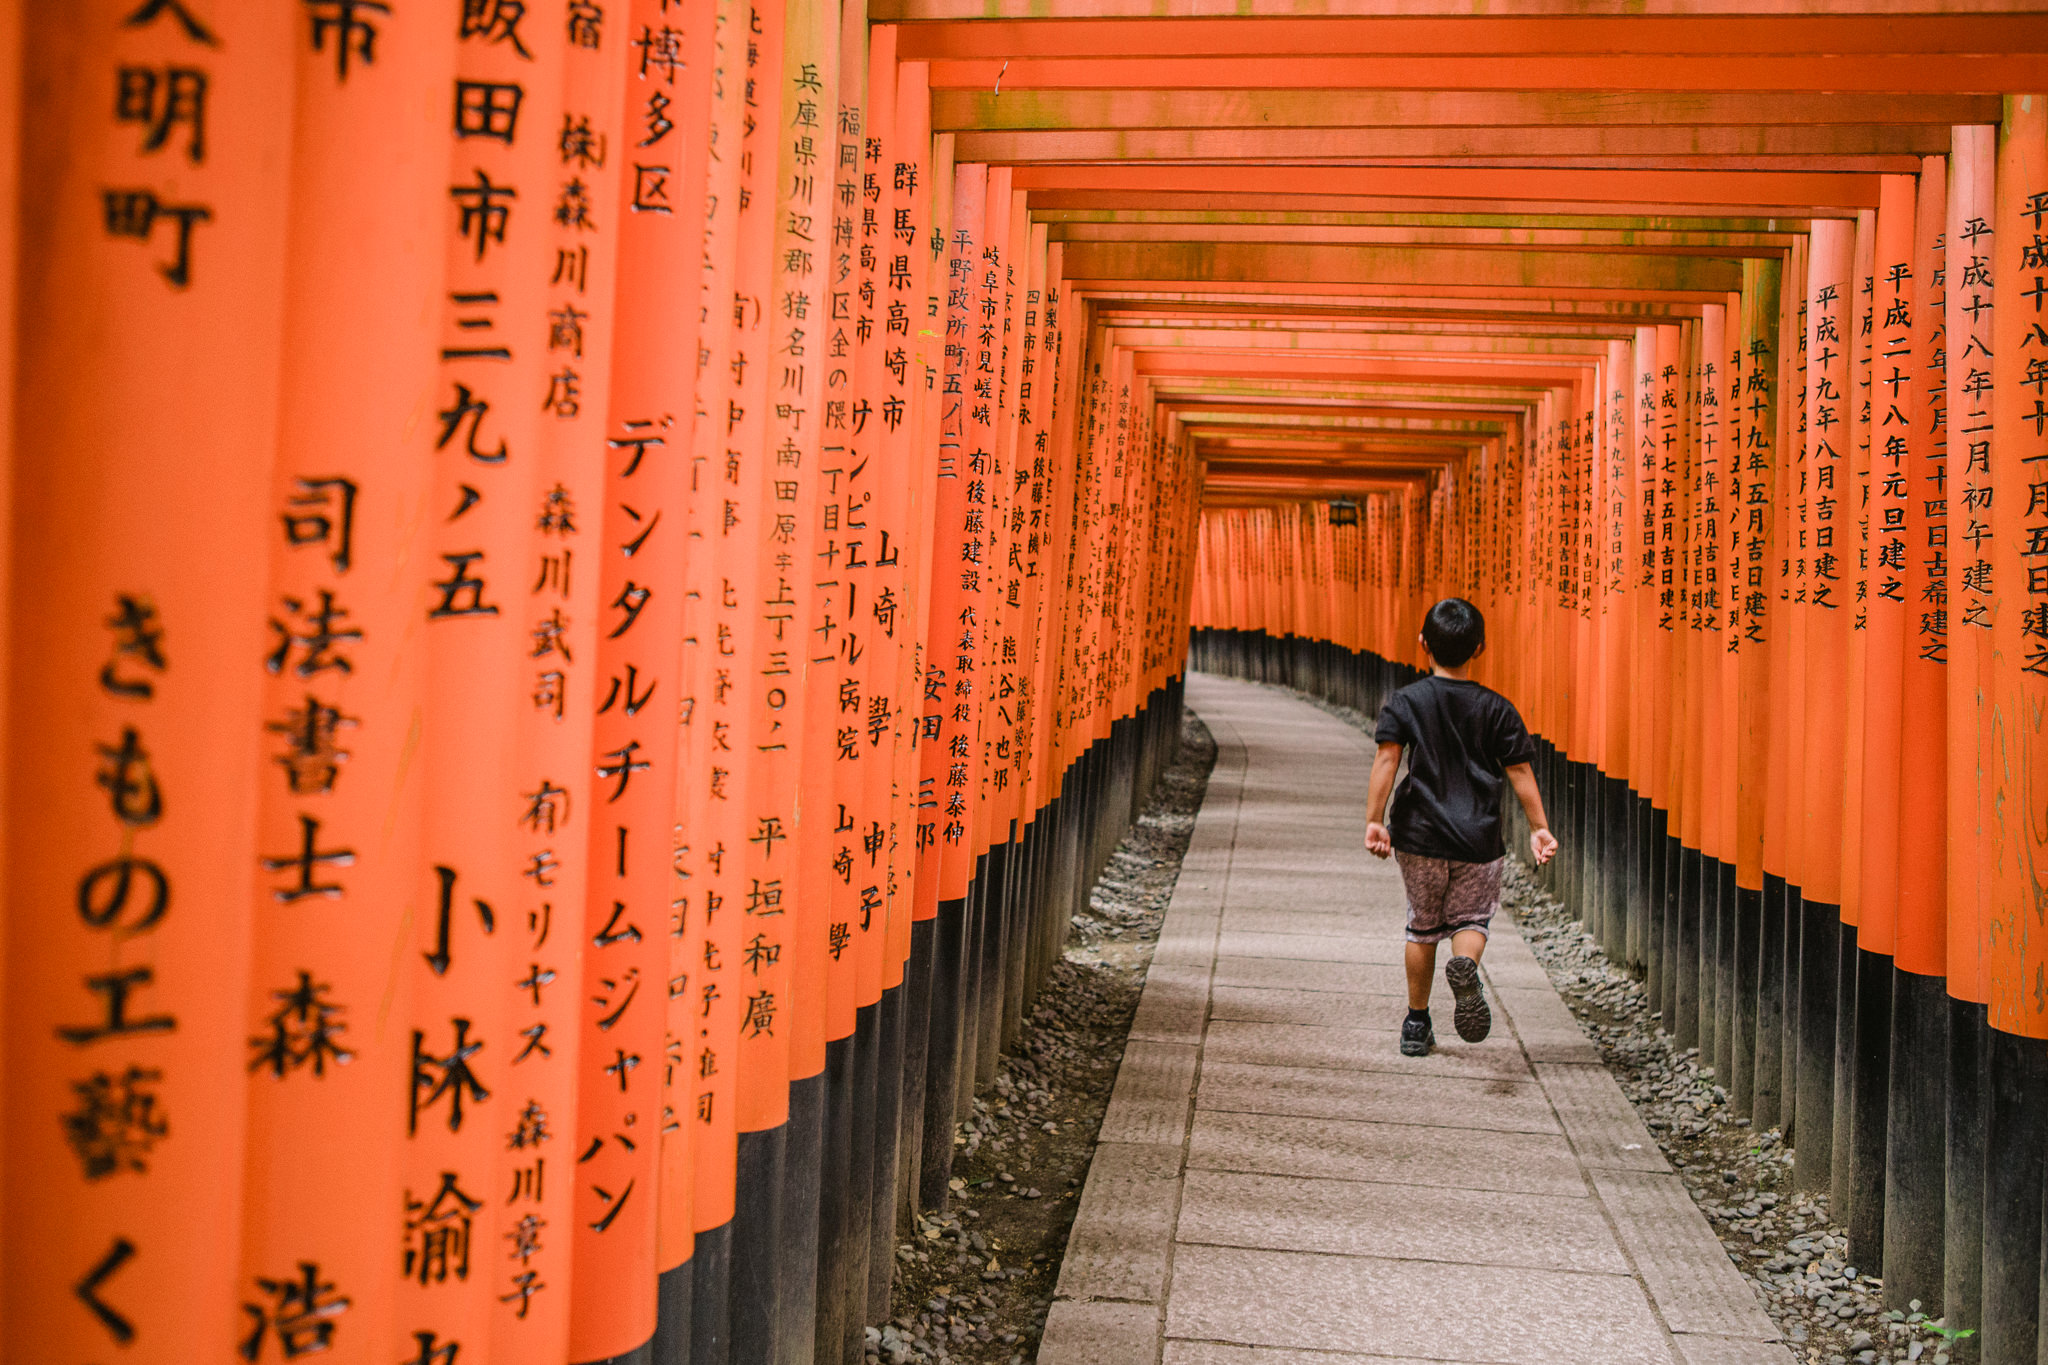 Red Gate Temple in Kyoto - Japan - Fushimi Inari-taishi - Melbourne Travel Blogger and Photographer